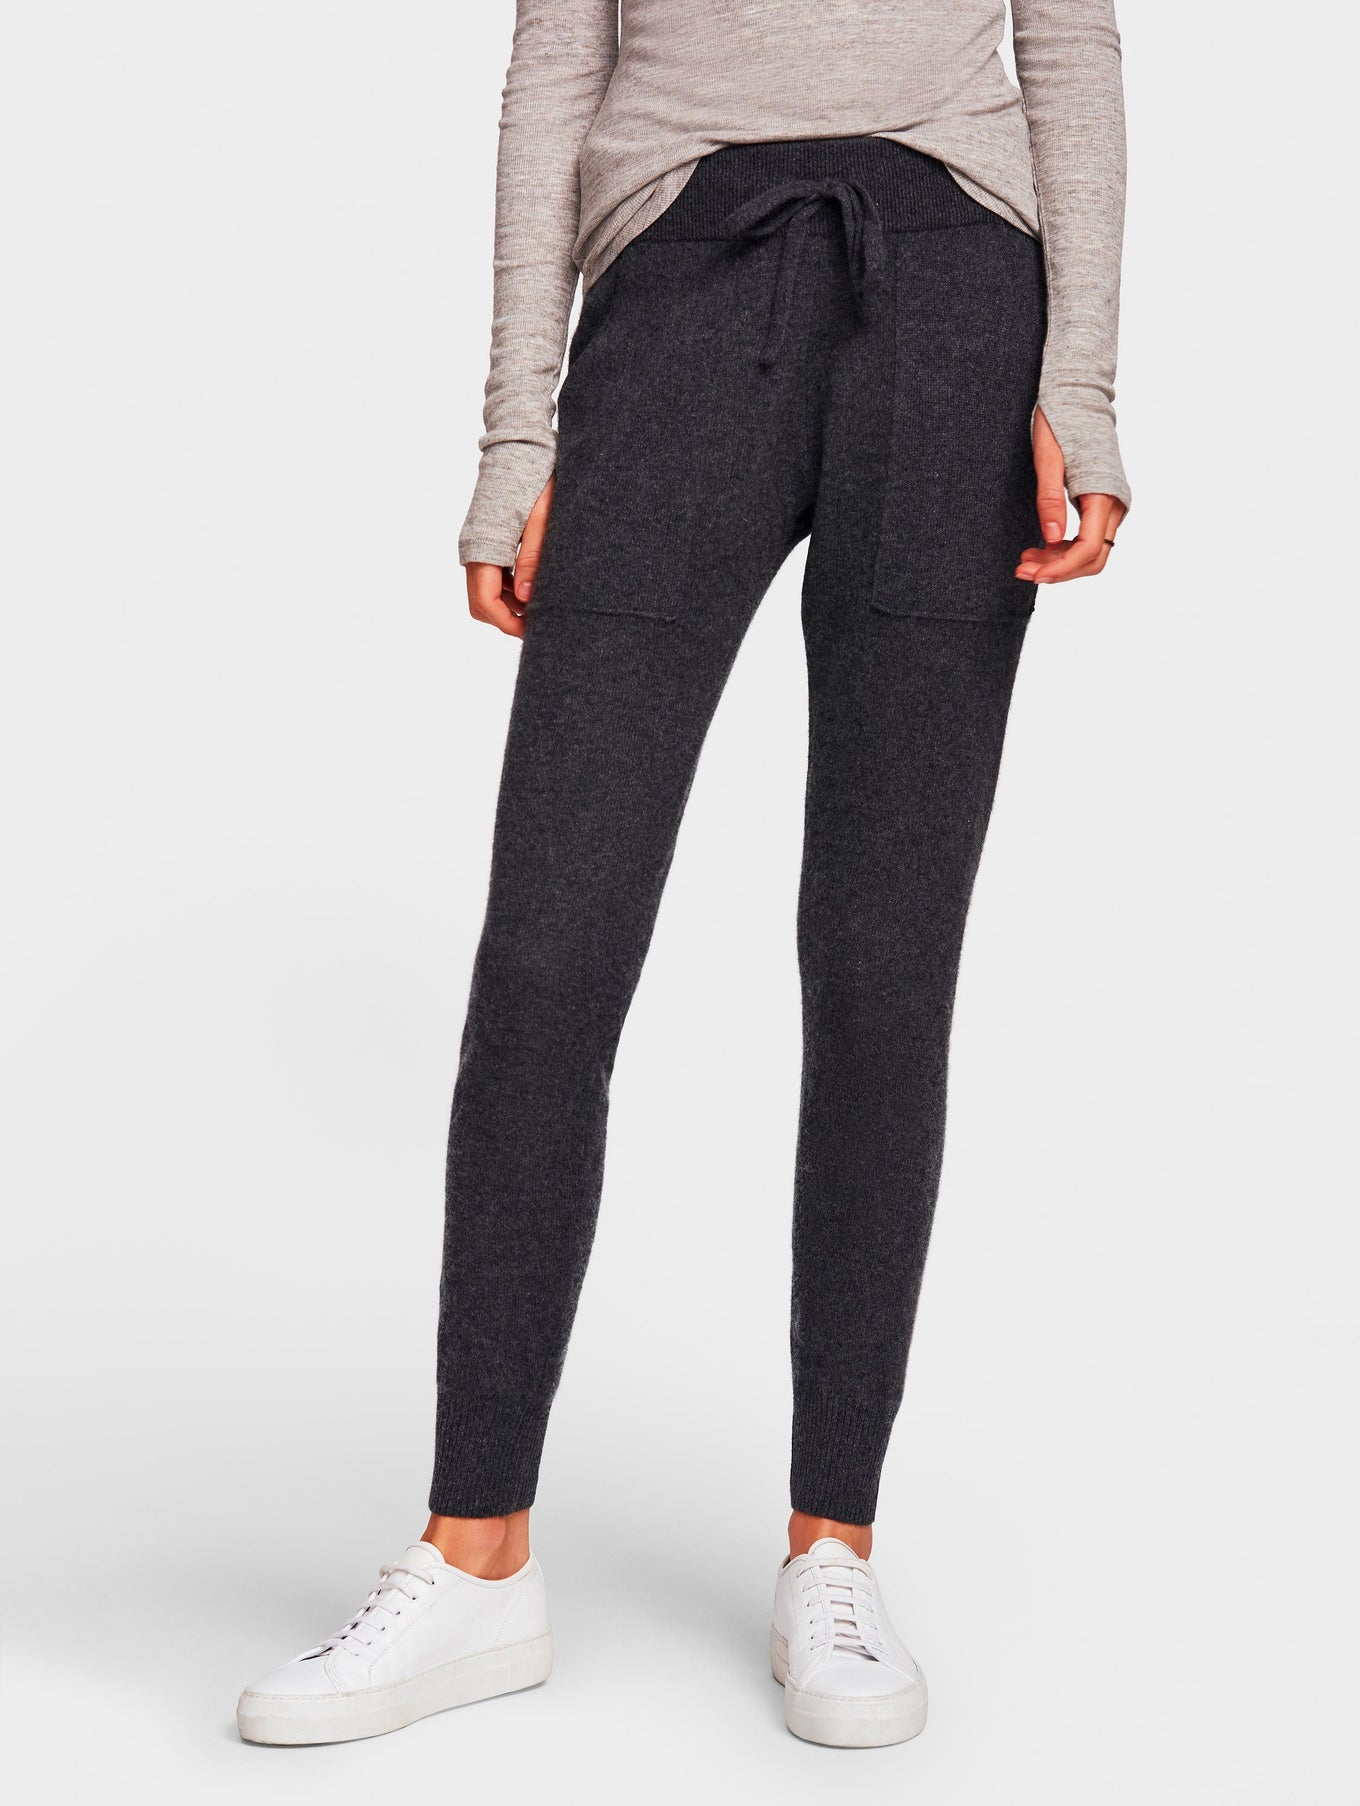 Cashmere Lounge Pant - Charcoal Heather - Image 2